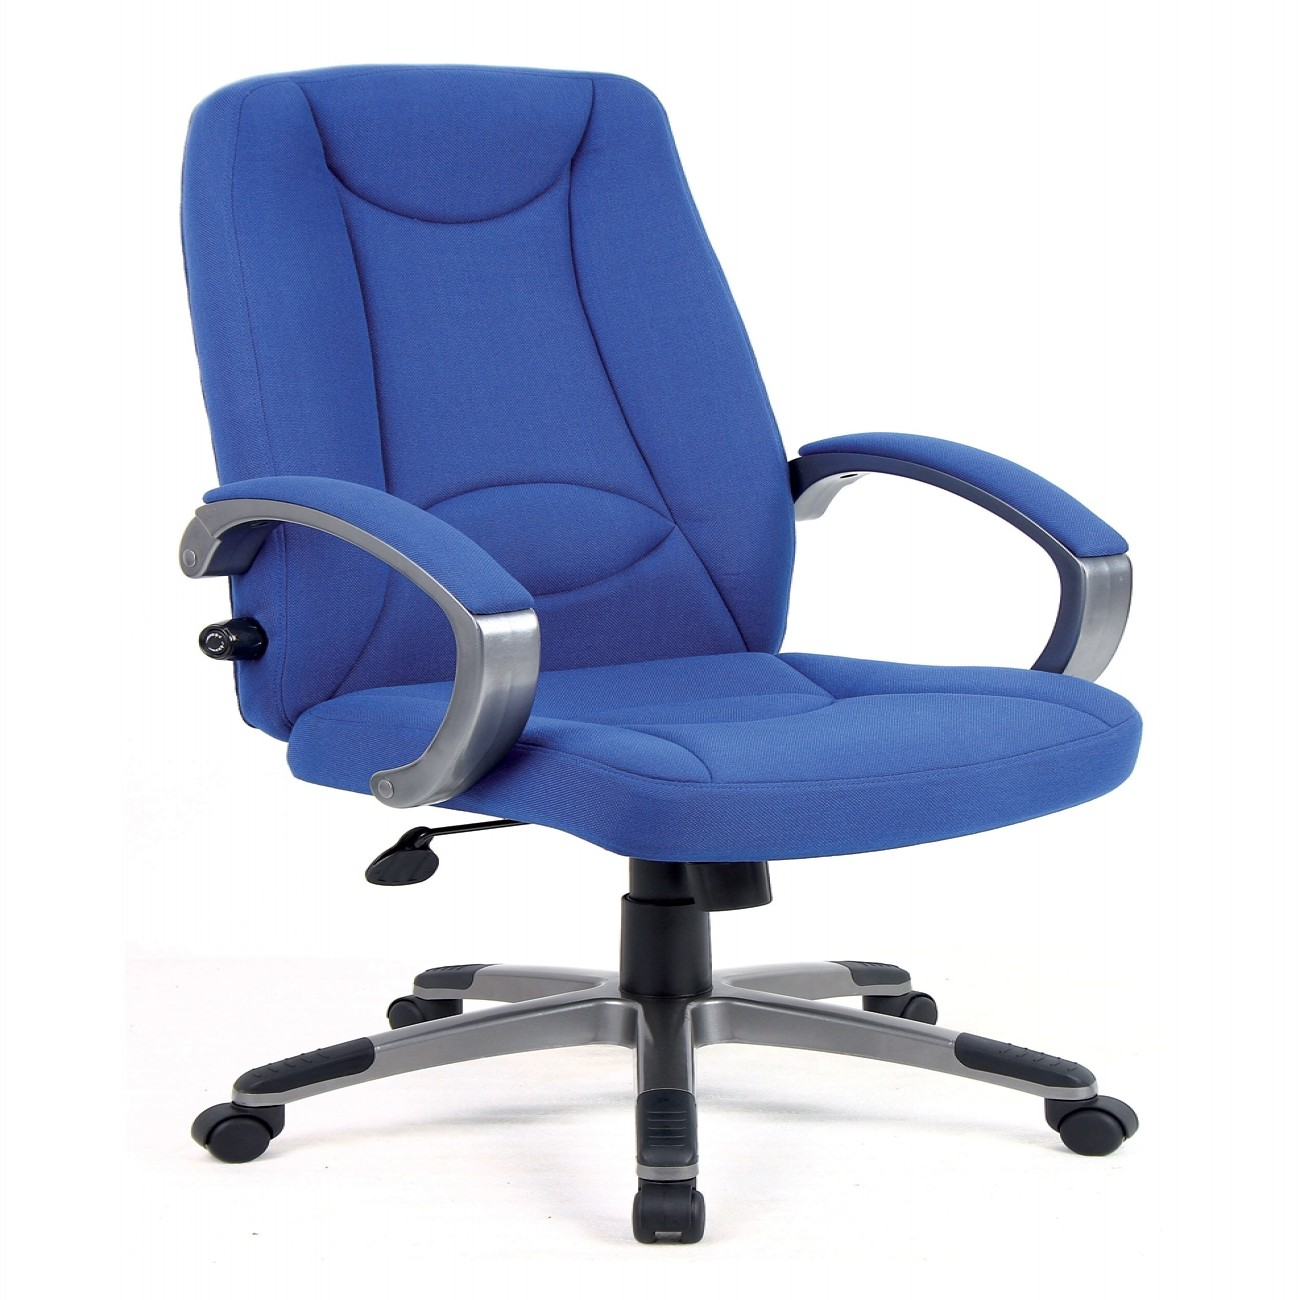 Managers Chair LUC300T1 121 Office Furniture : 1403794083XVECsPQvdamslucafabricofficechairluc300t1b Heavy Duty Office Chairs <strong>500 Lbs</strong> from www.121officefurniture.co.uk size 1300 x 1300 jpeg 208kB